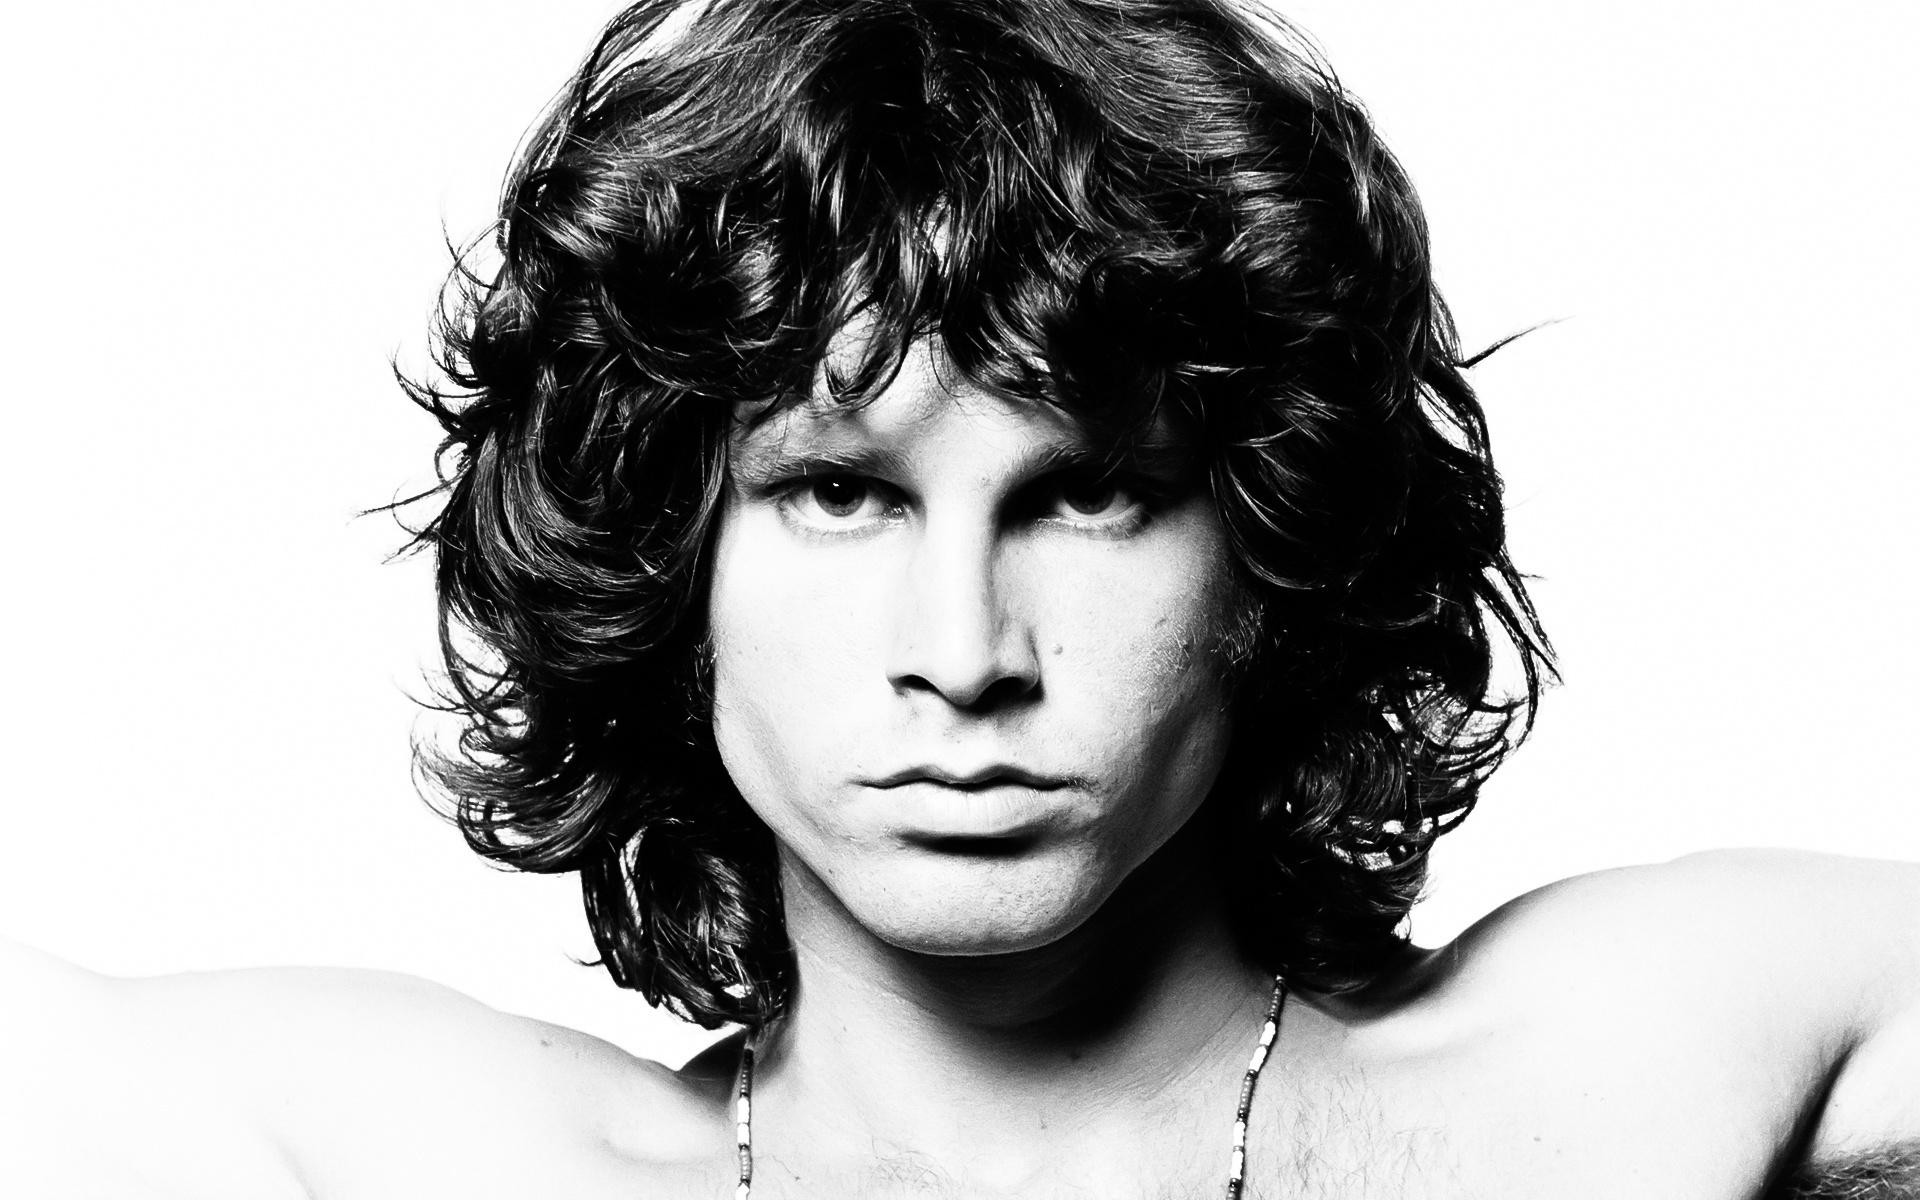 Jim Morrison alongside countless others from